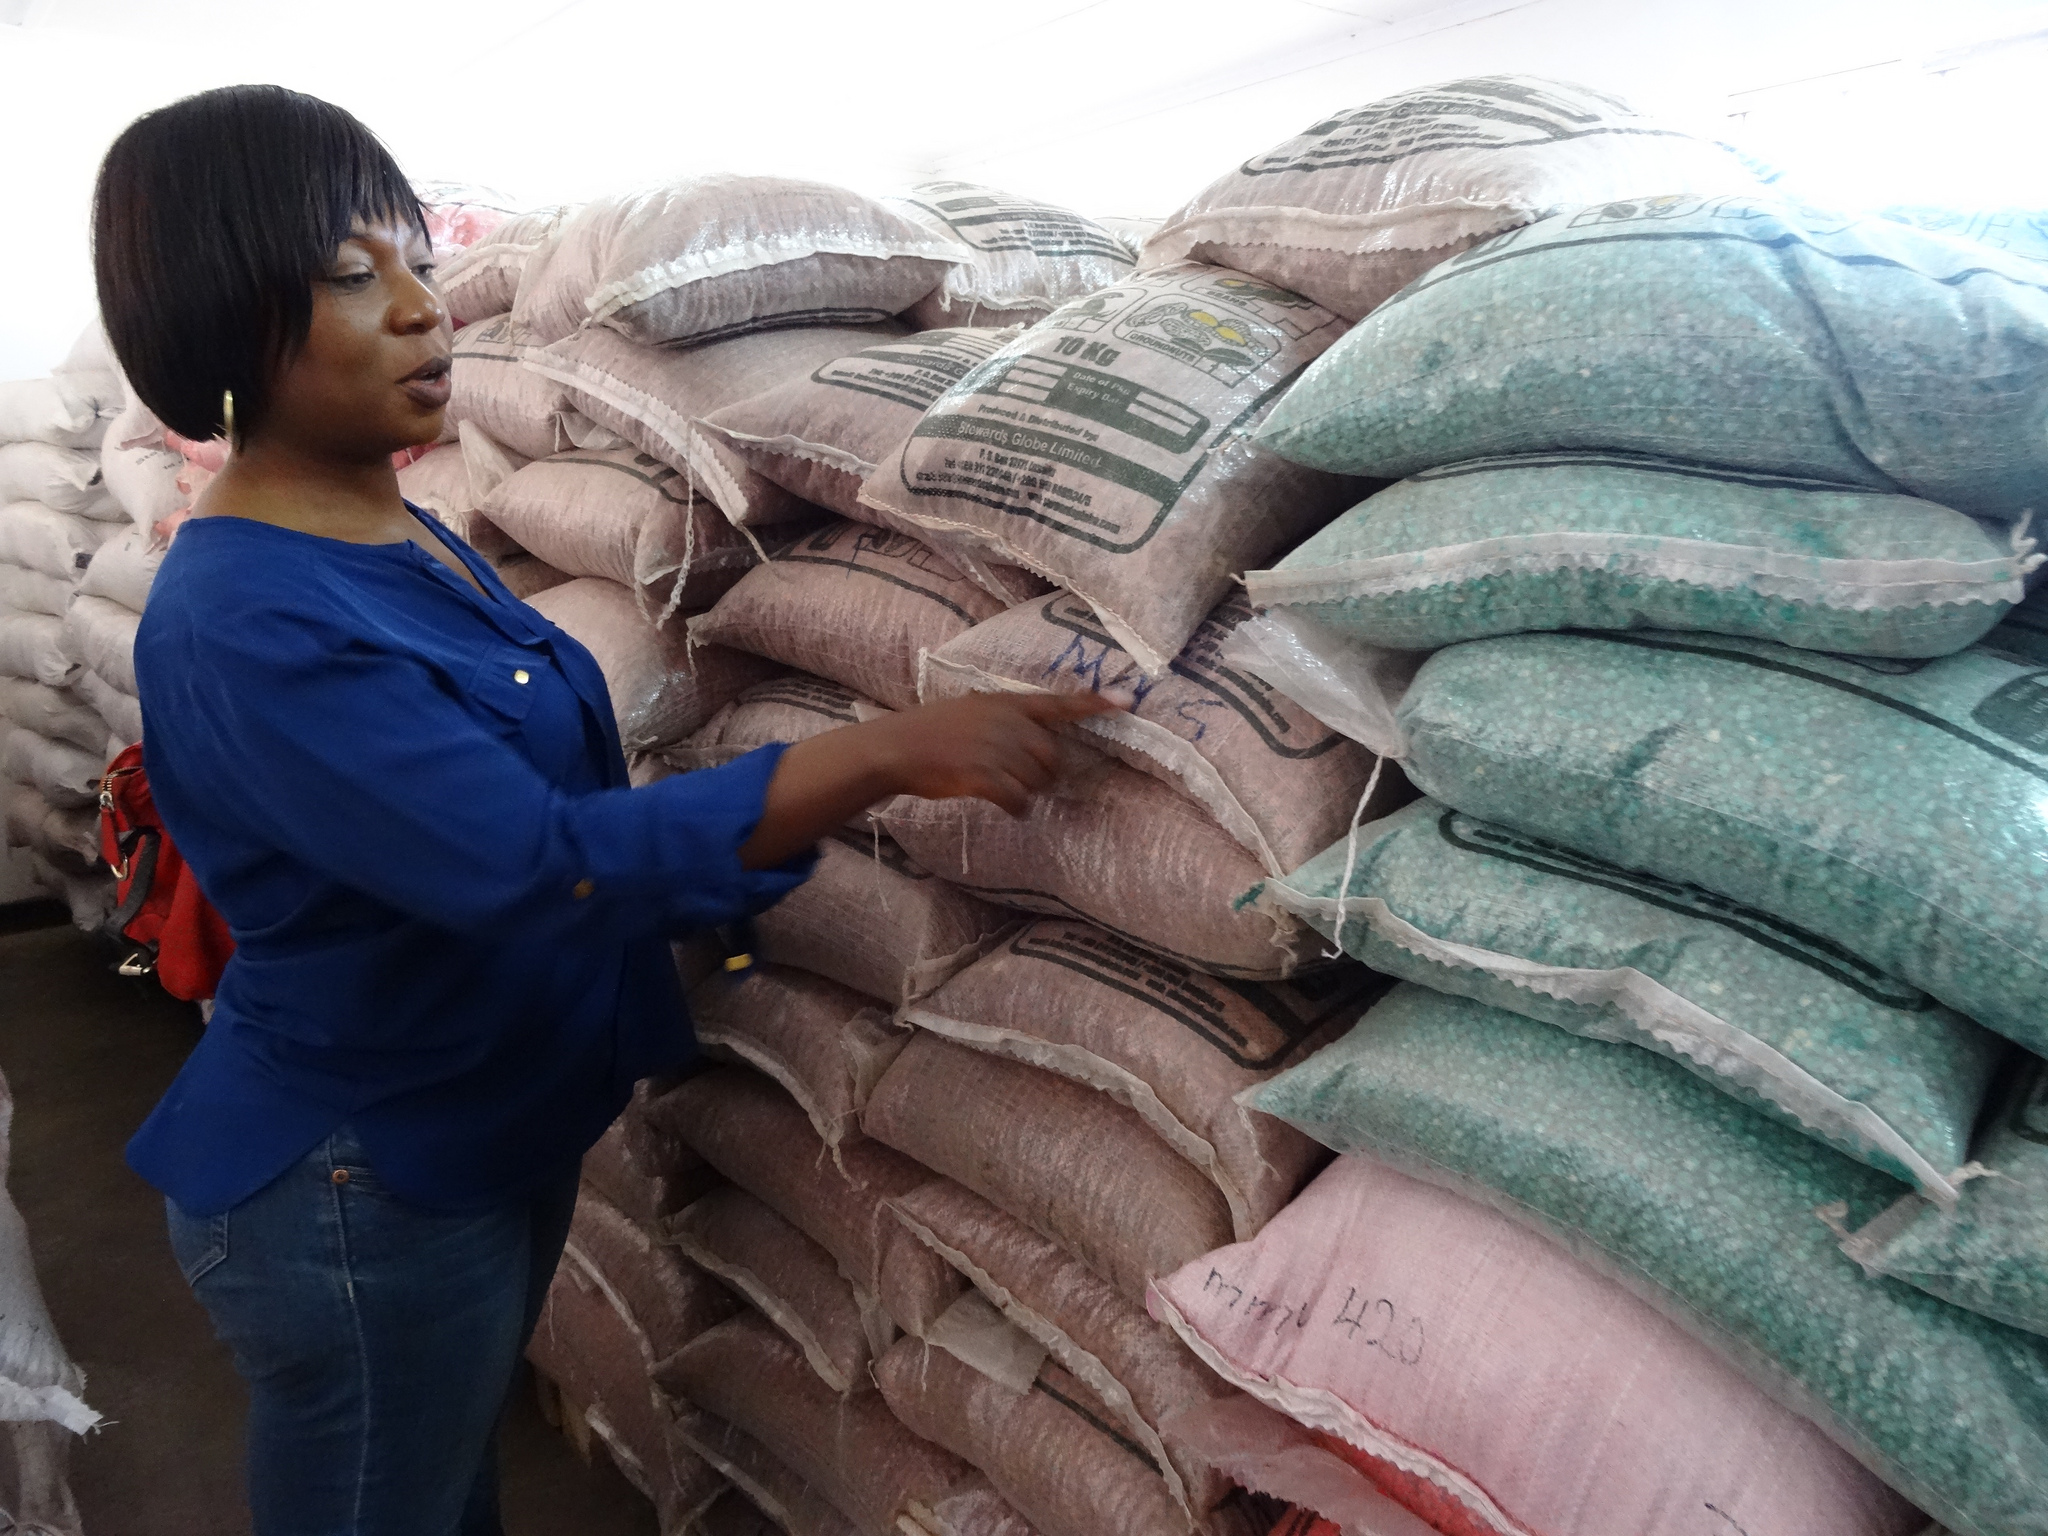 Woman from Zambia next to sacks of food